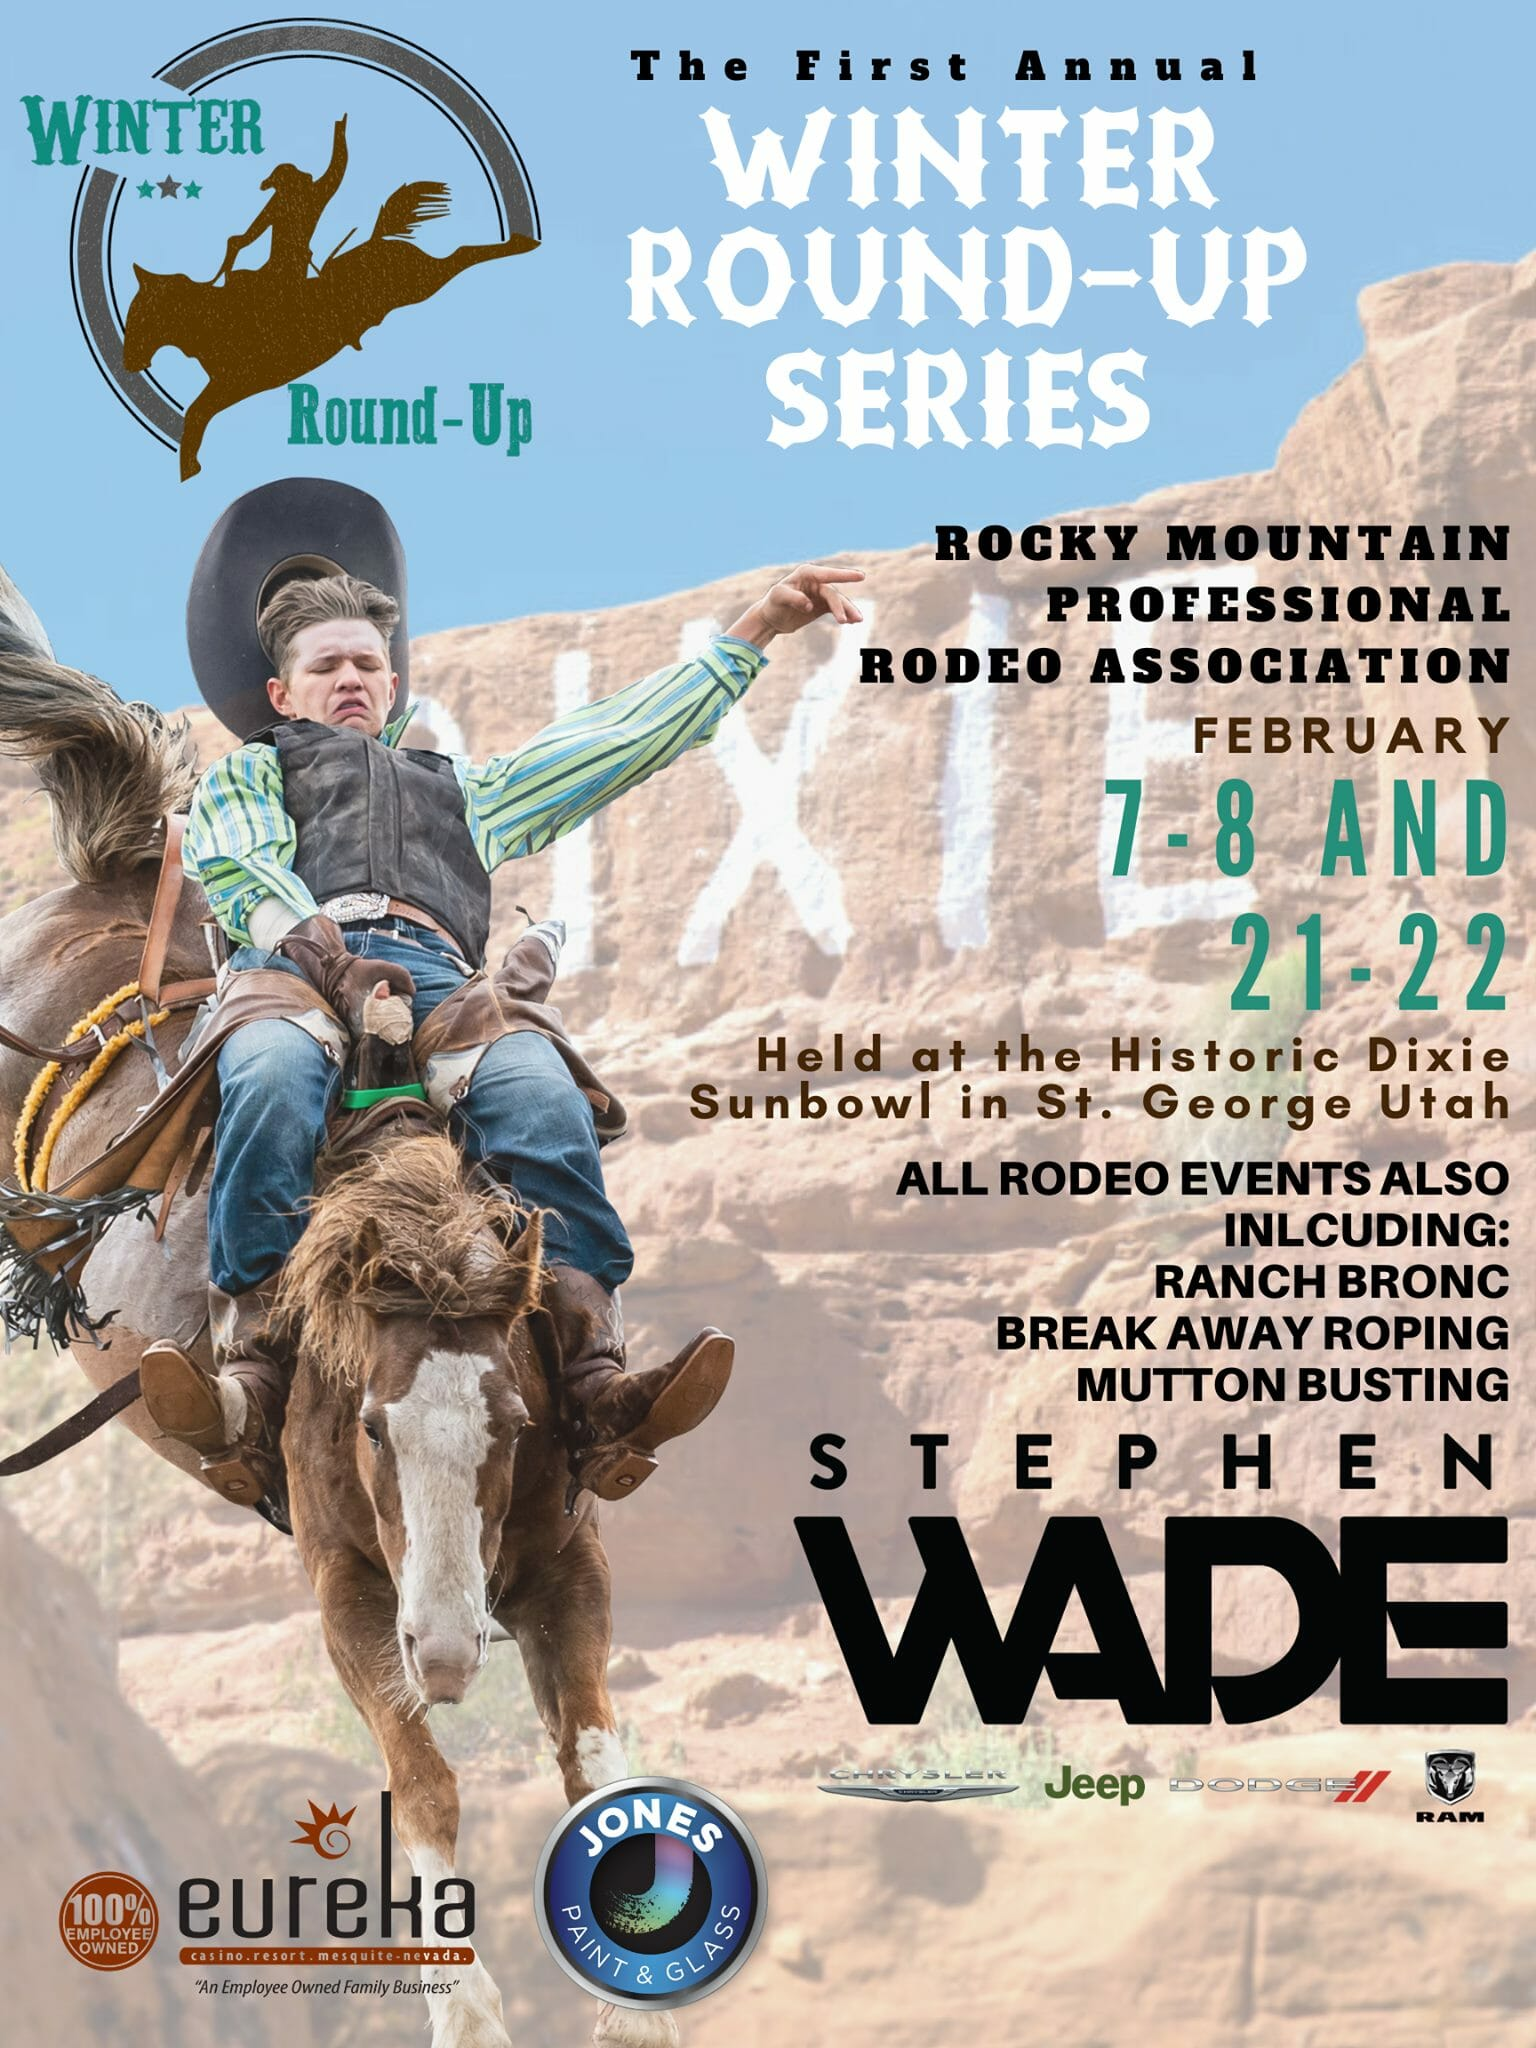 Flyer with Dixie Rock in background and bullrider in foreground